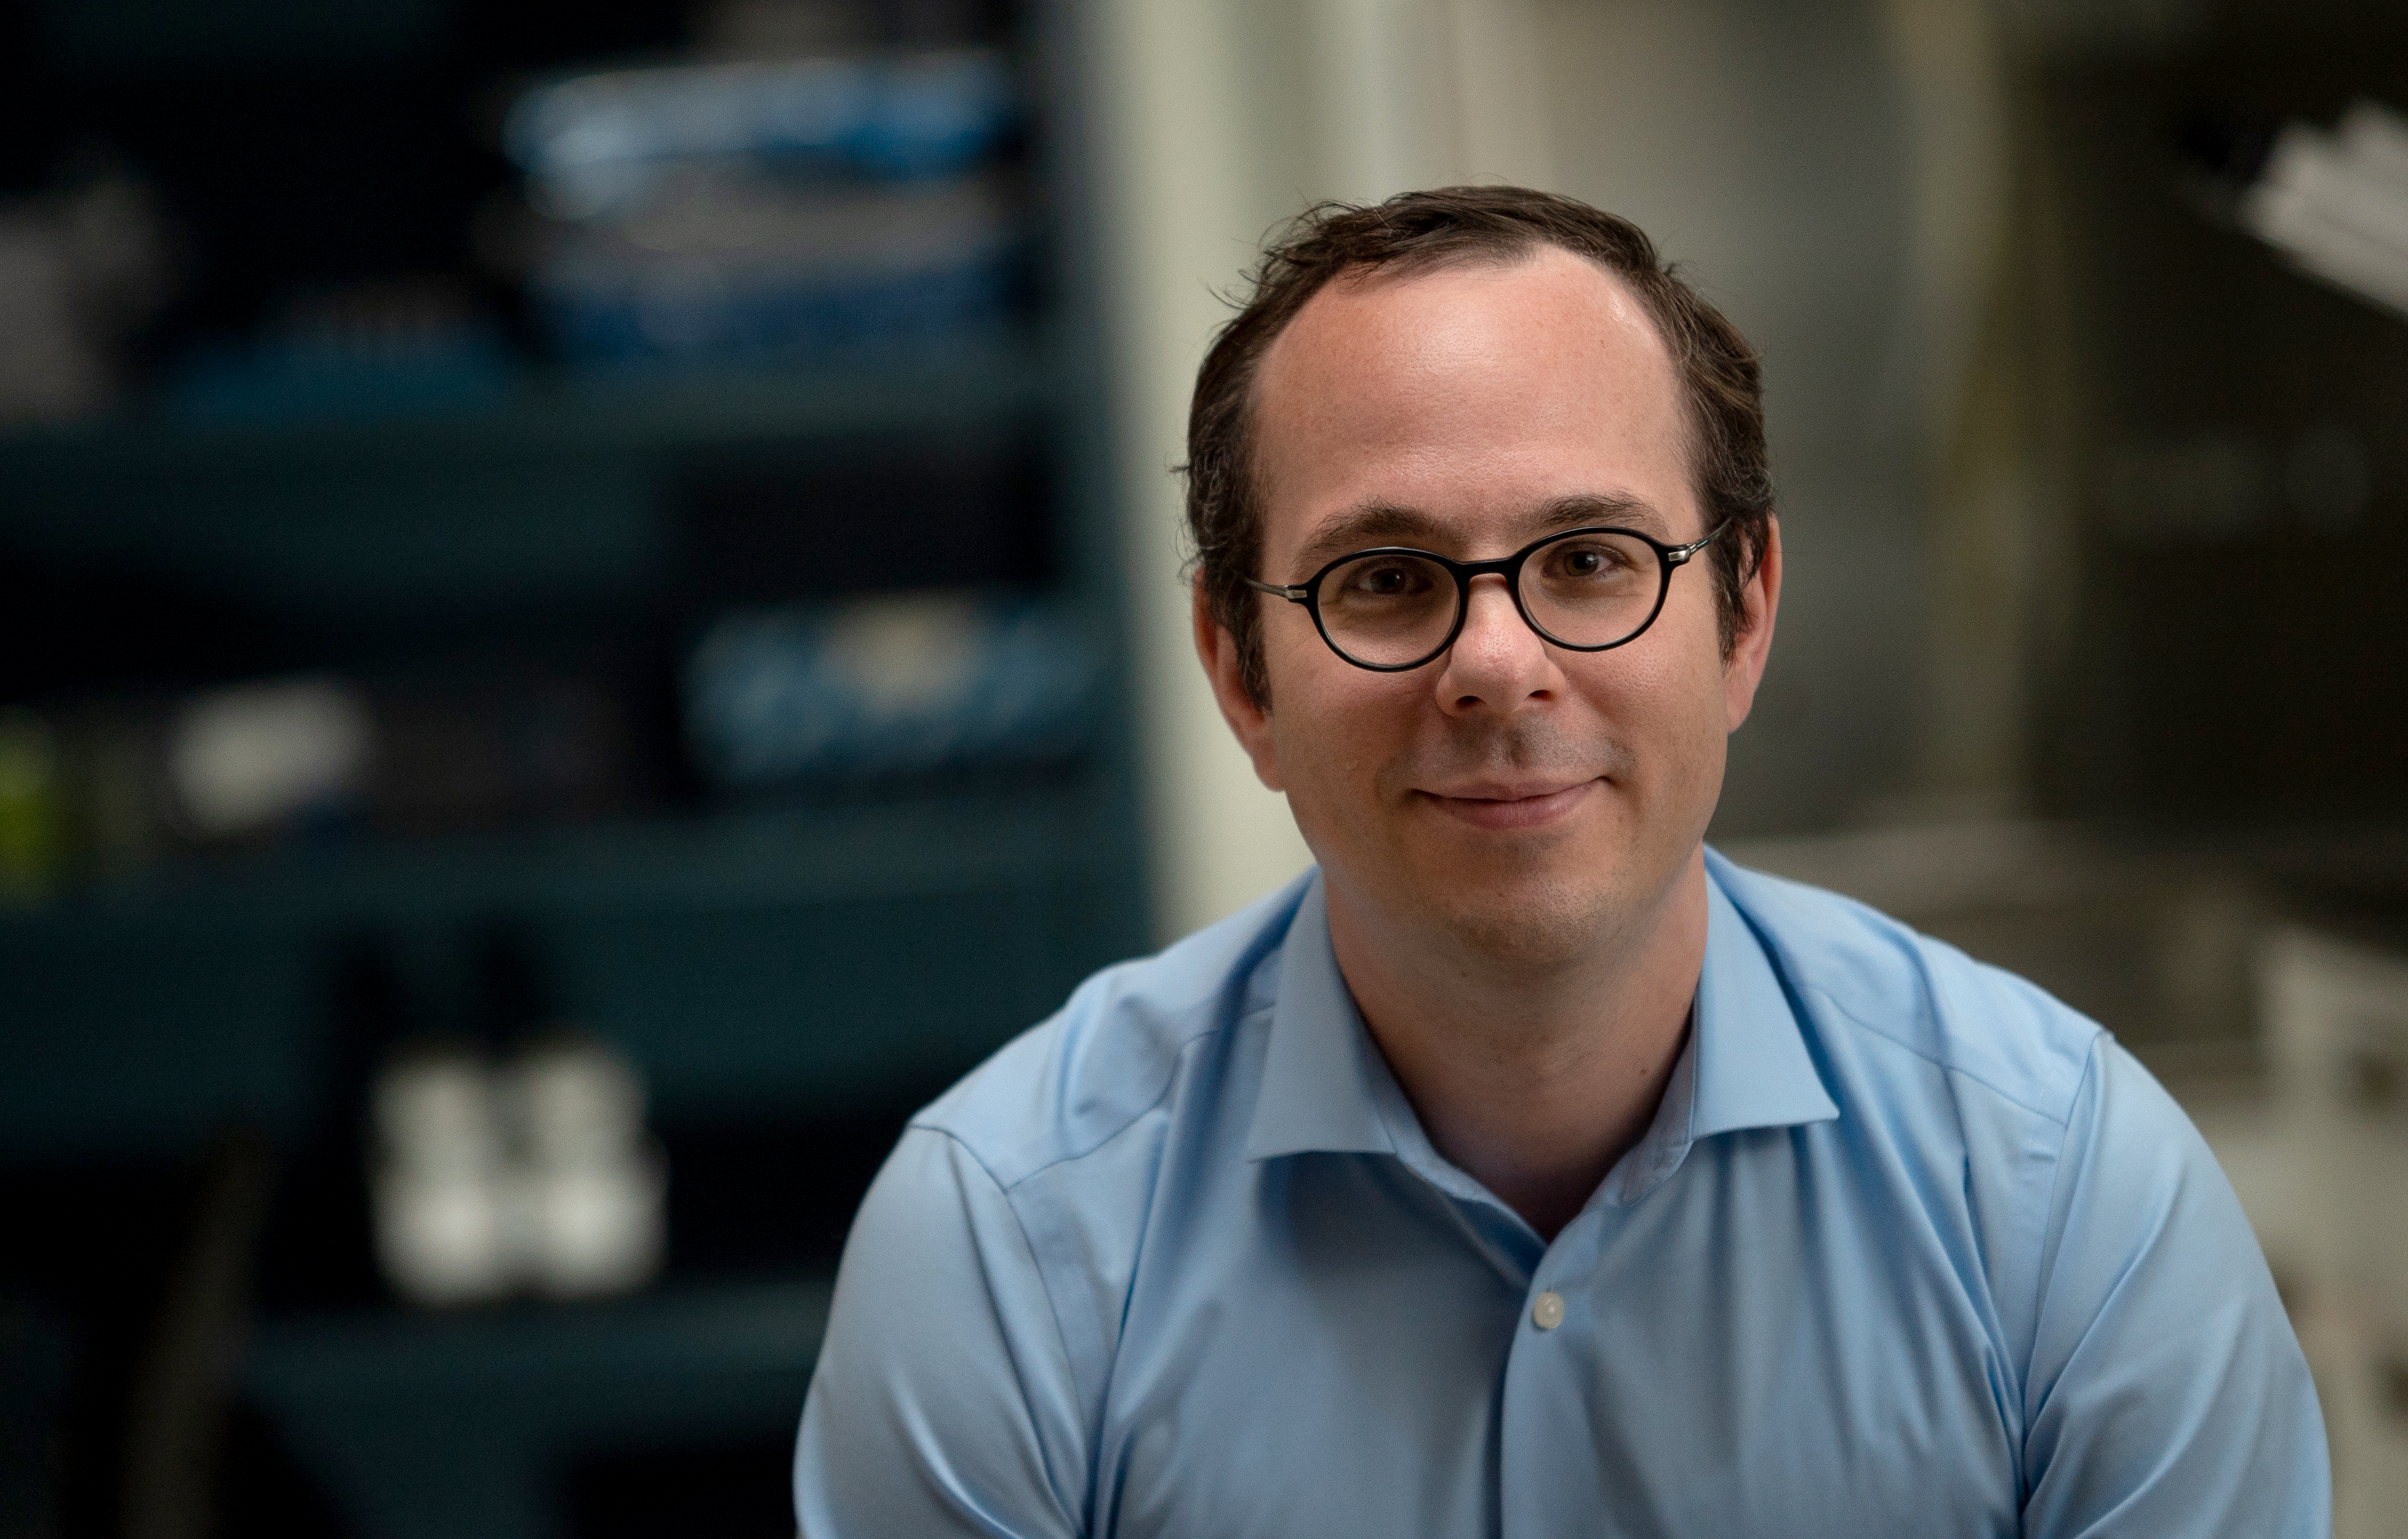 UCLA researcher uses big data to help optimize cancer treatment